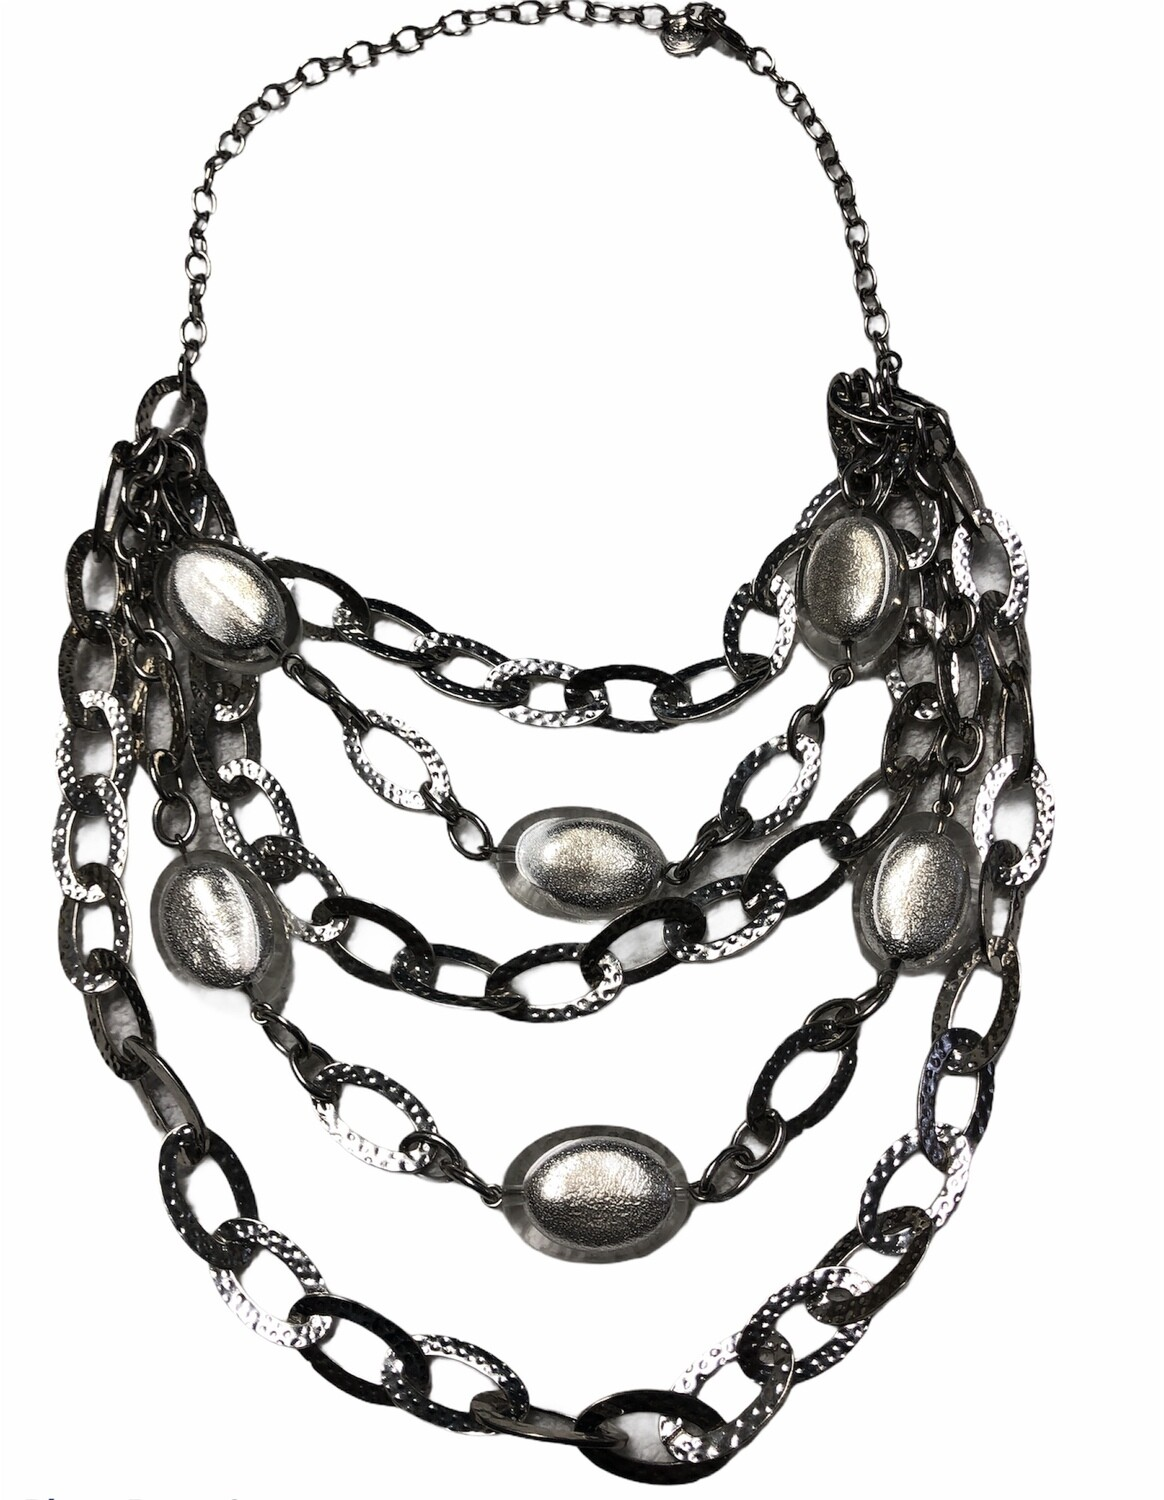 GRAZIANO 5-Strand Link & Bead Statement Necklace